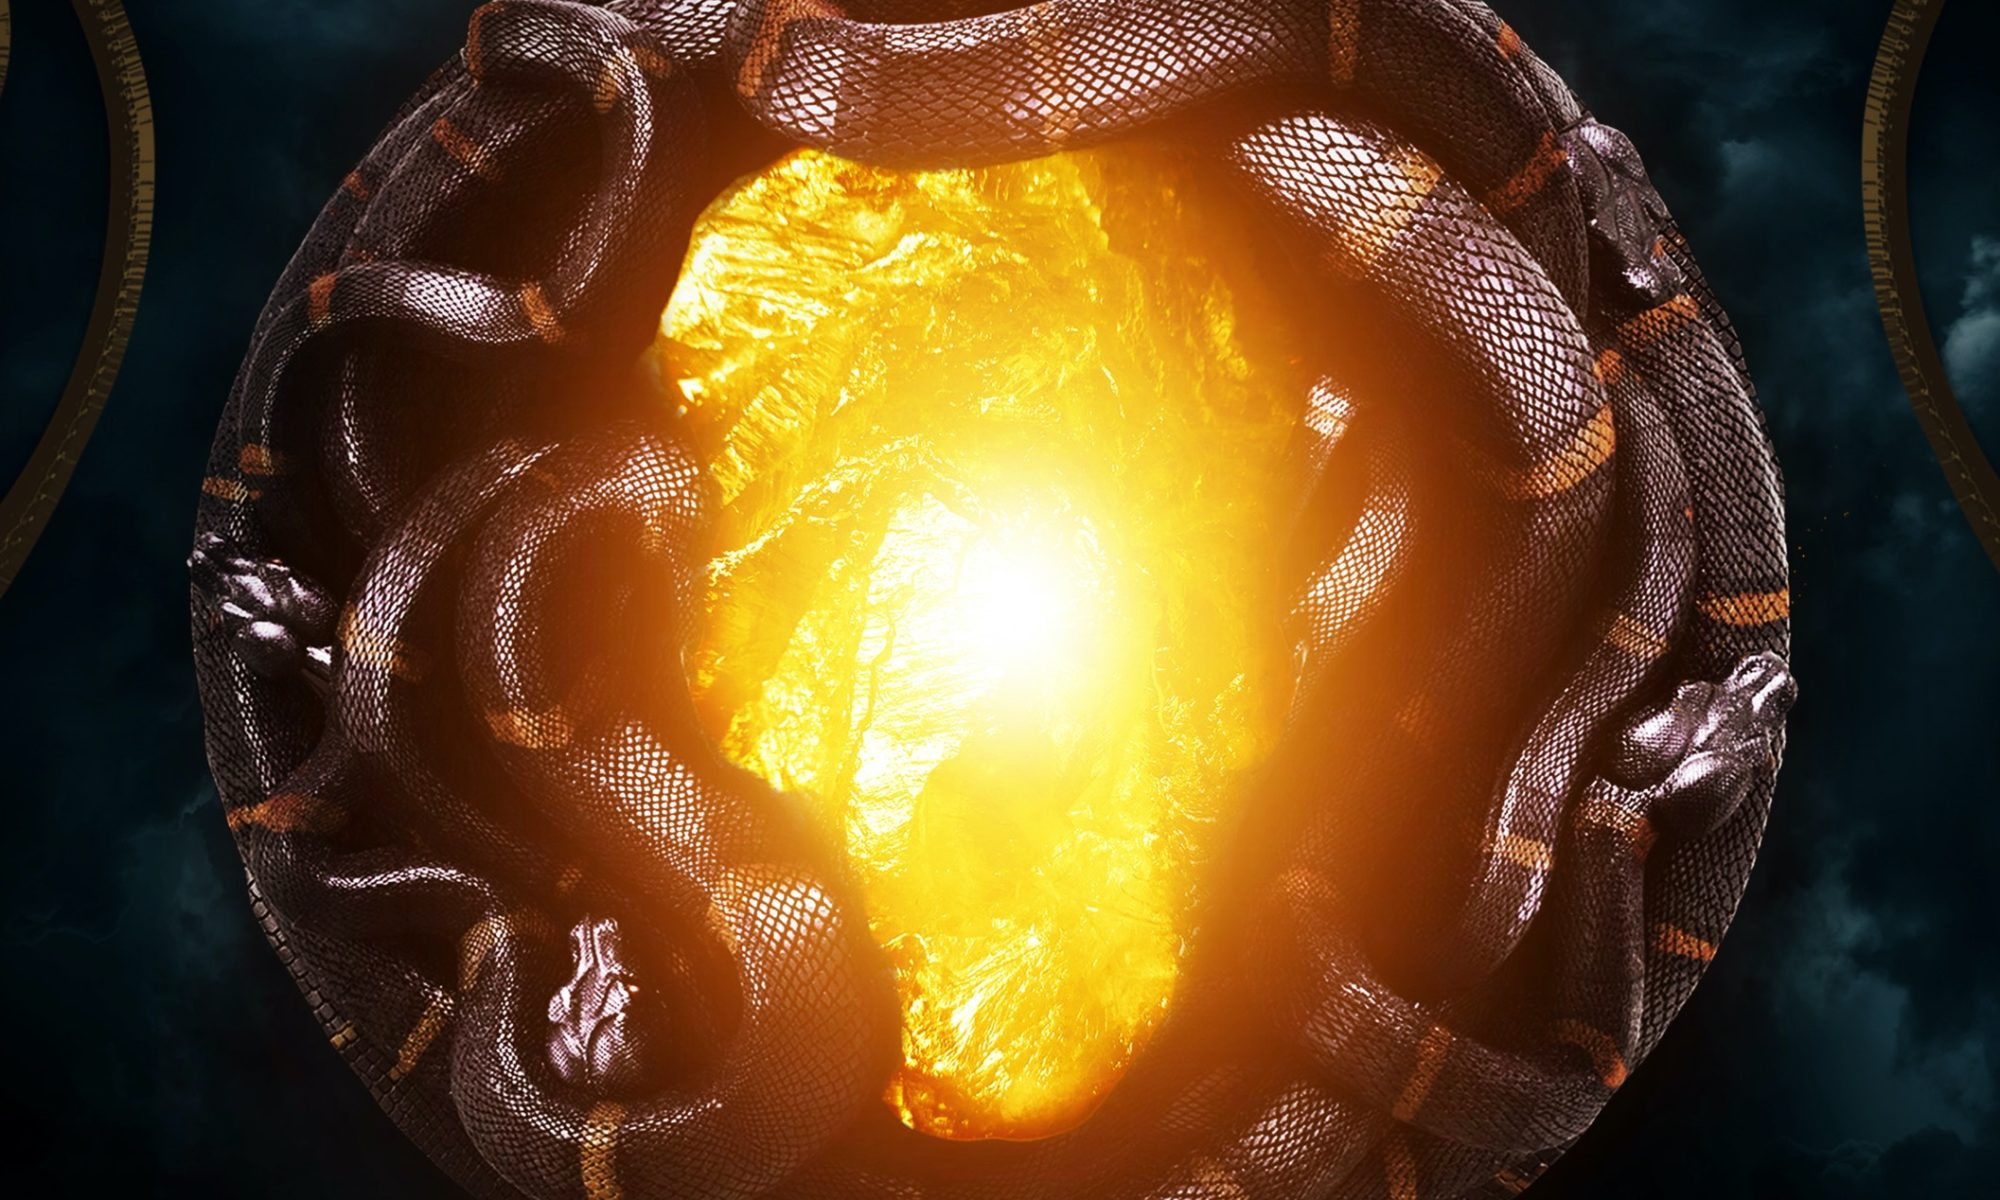 Snakes wrapped around yellow light